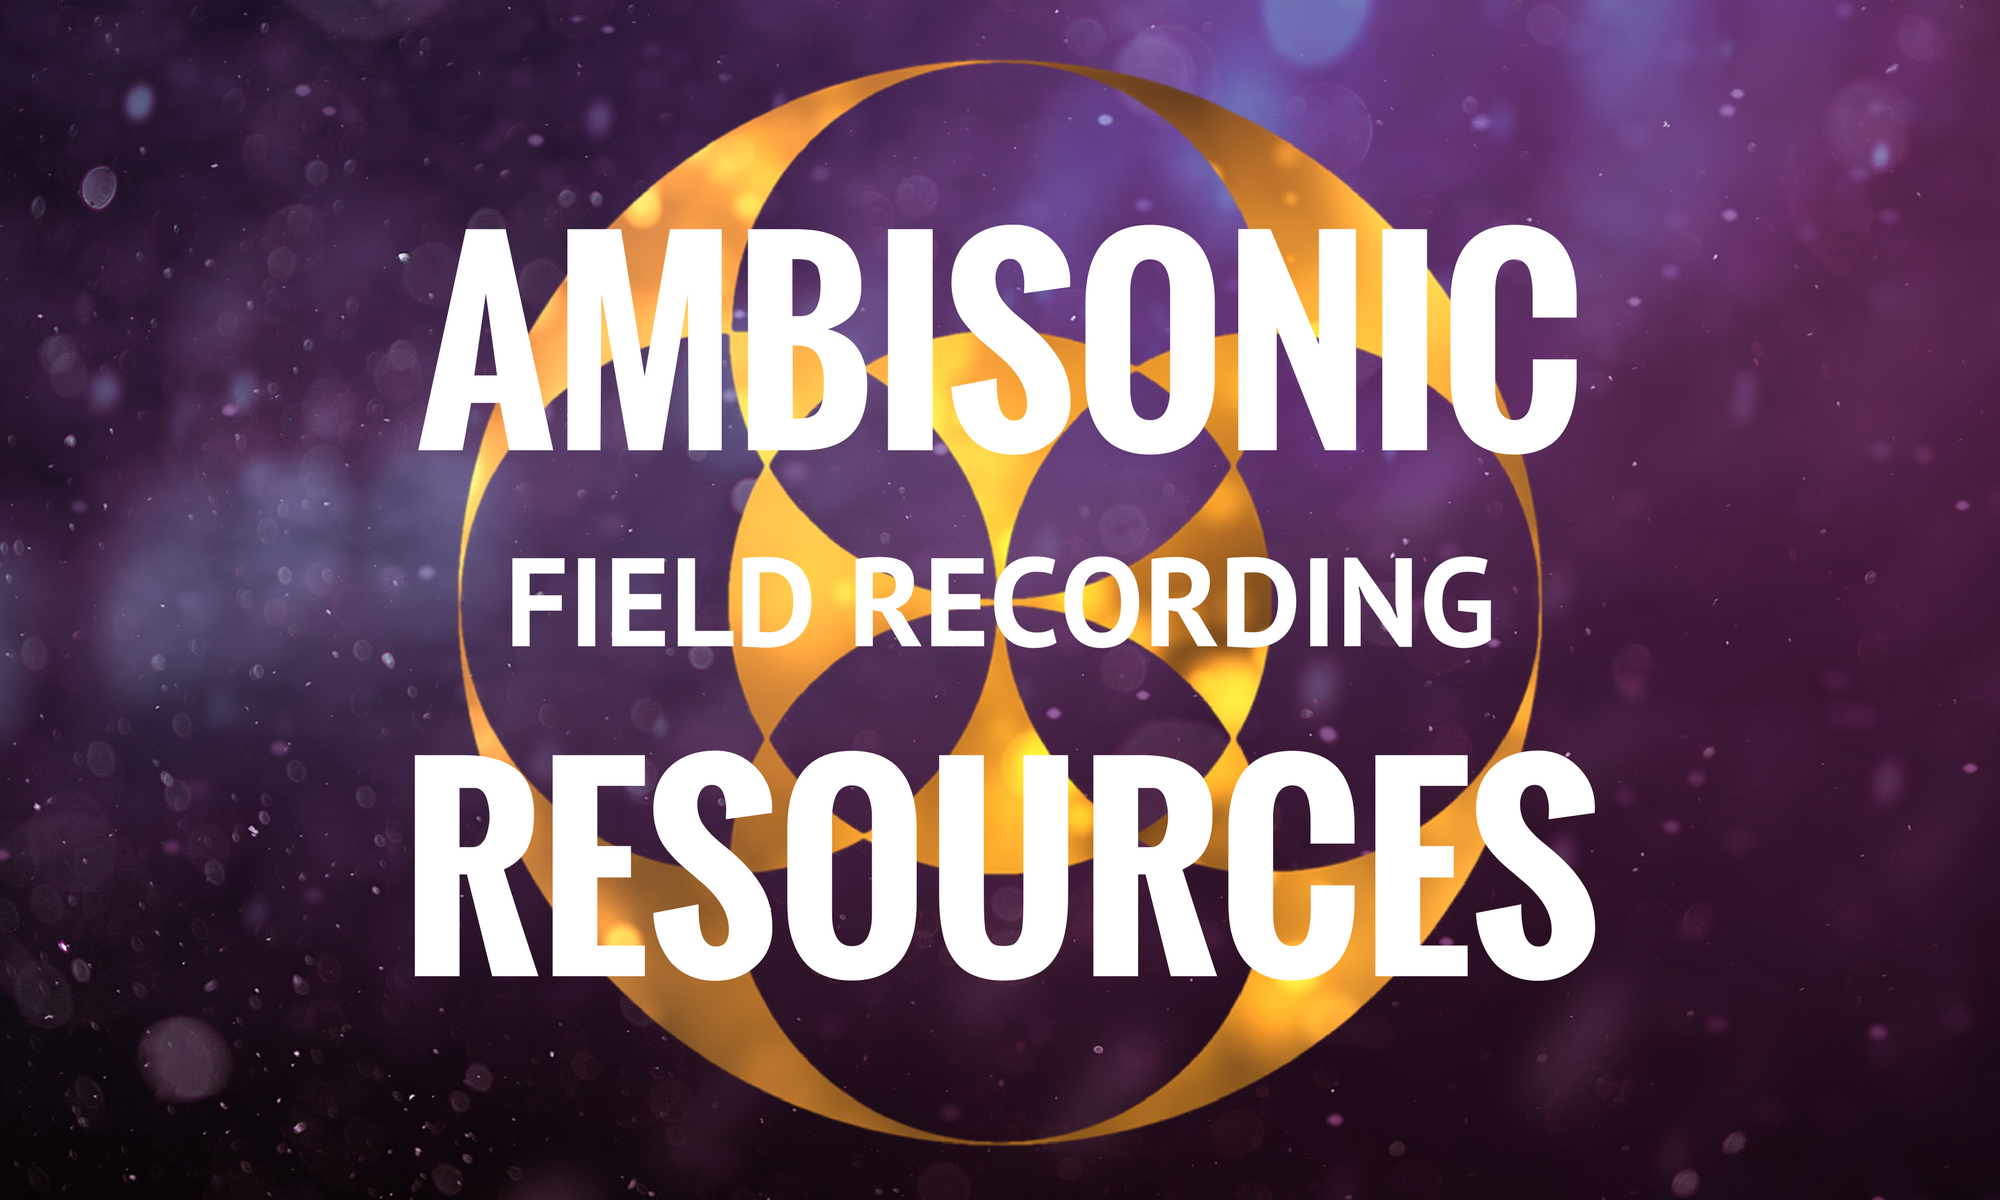 Ambisonic Field Recording Resources